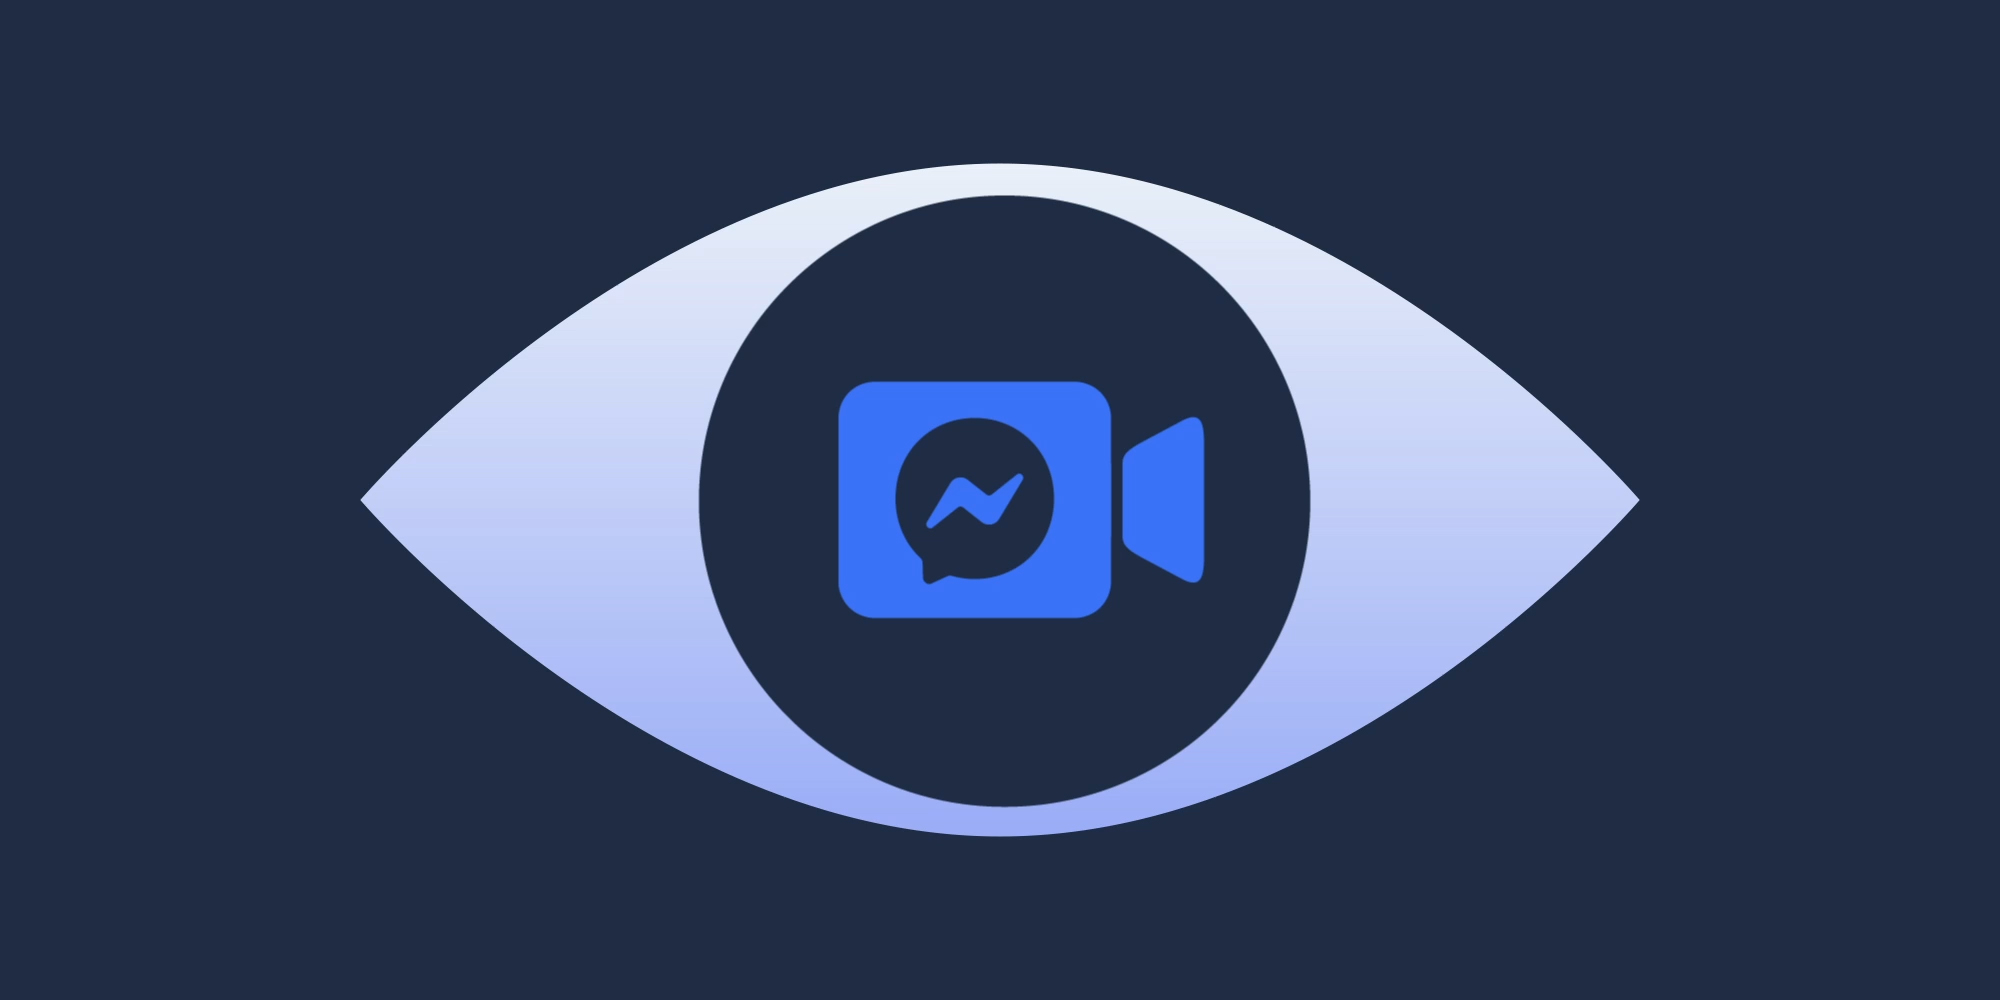 There's No Telling What Data Facebook Will Collect If You Use Its Zoom Clone